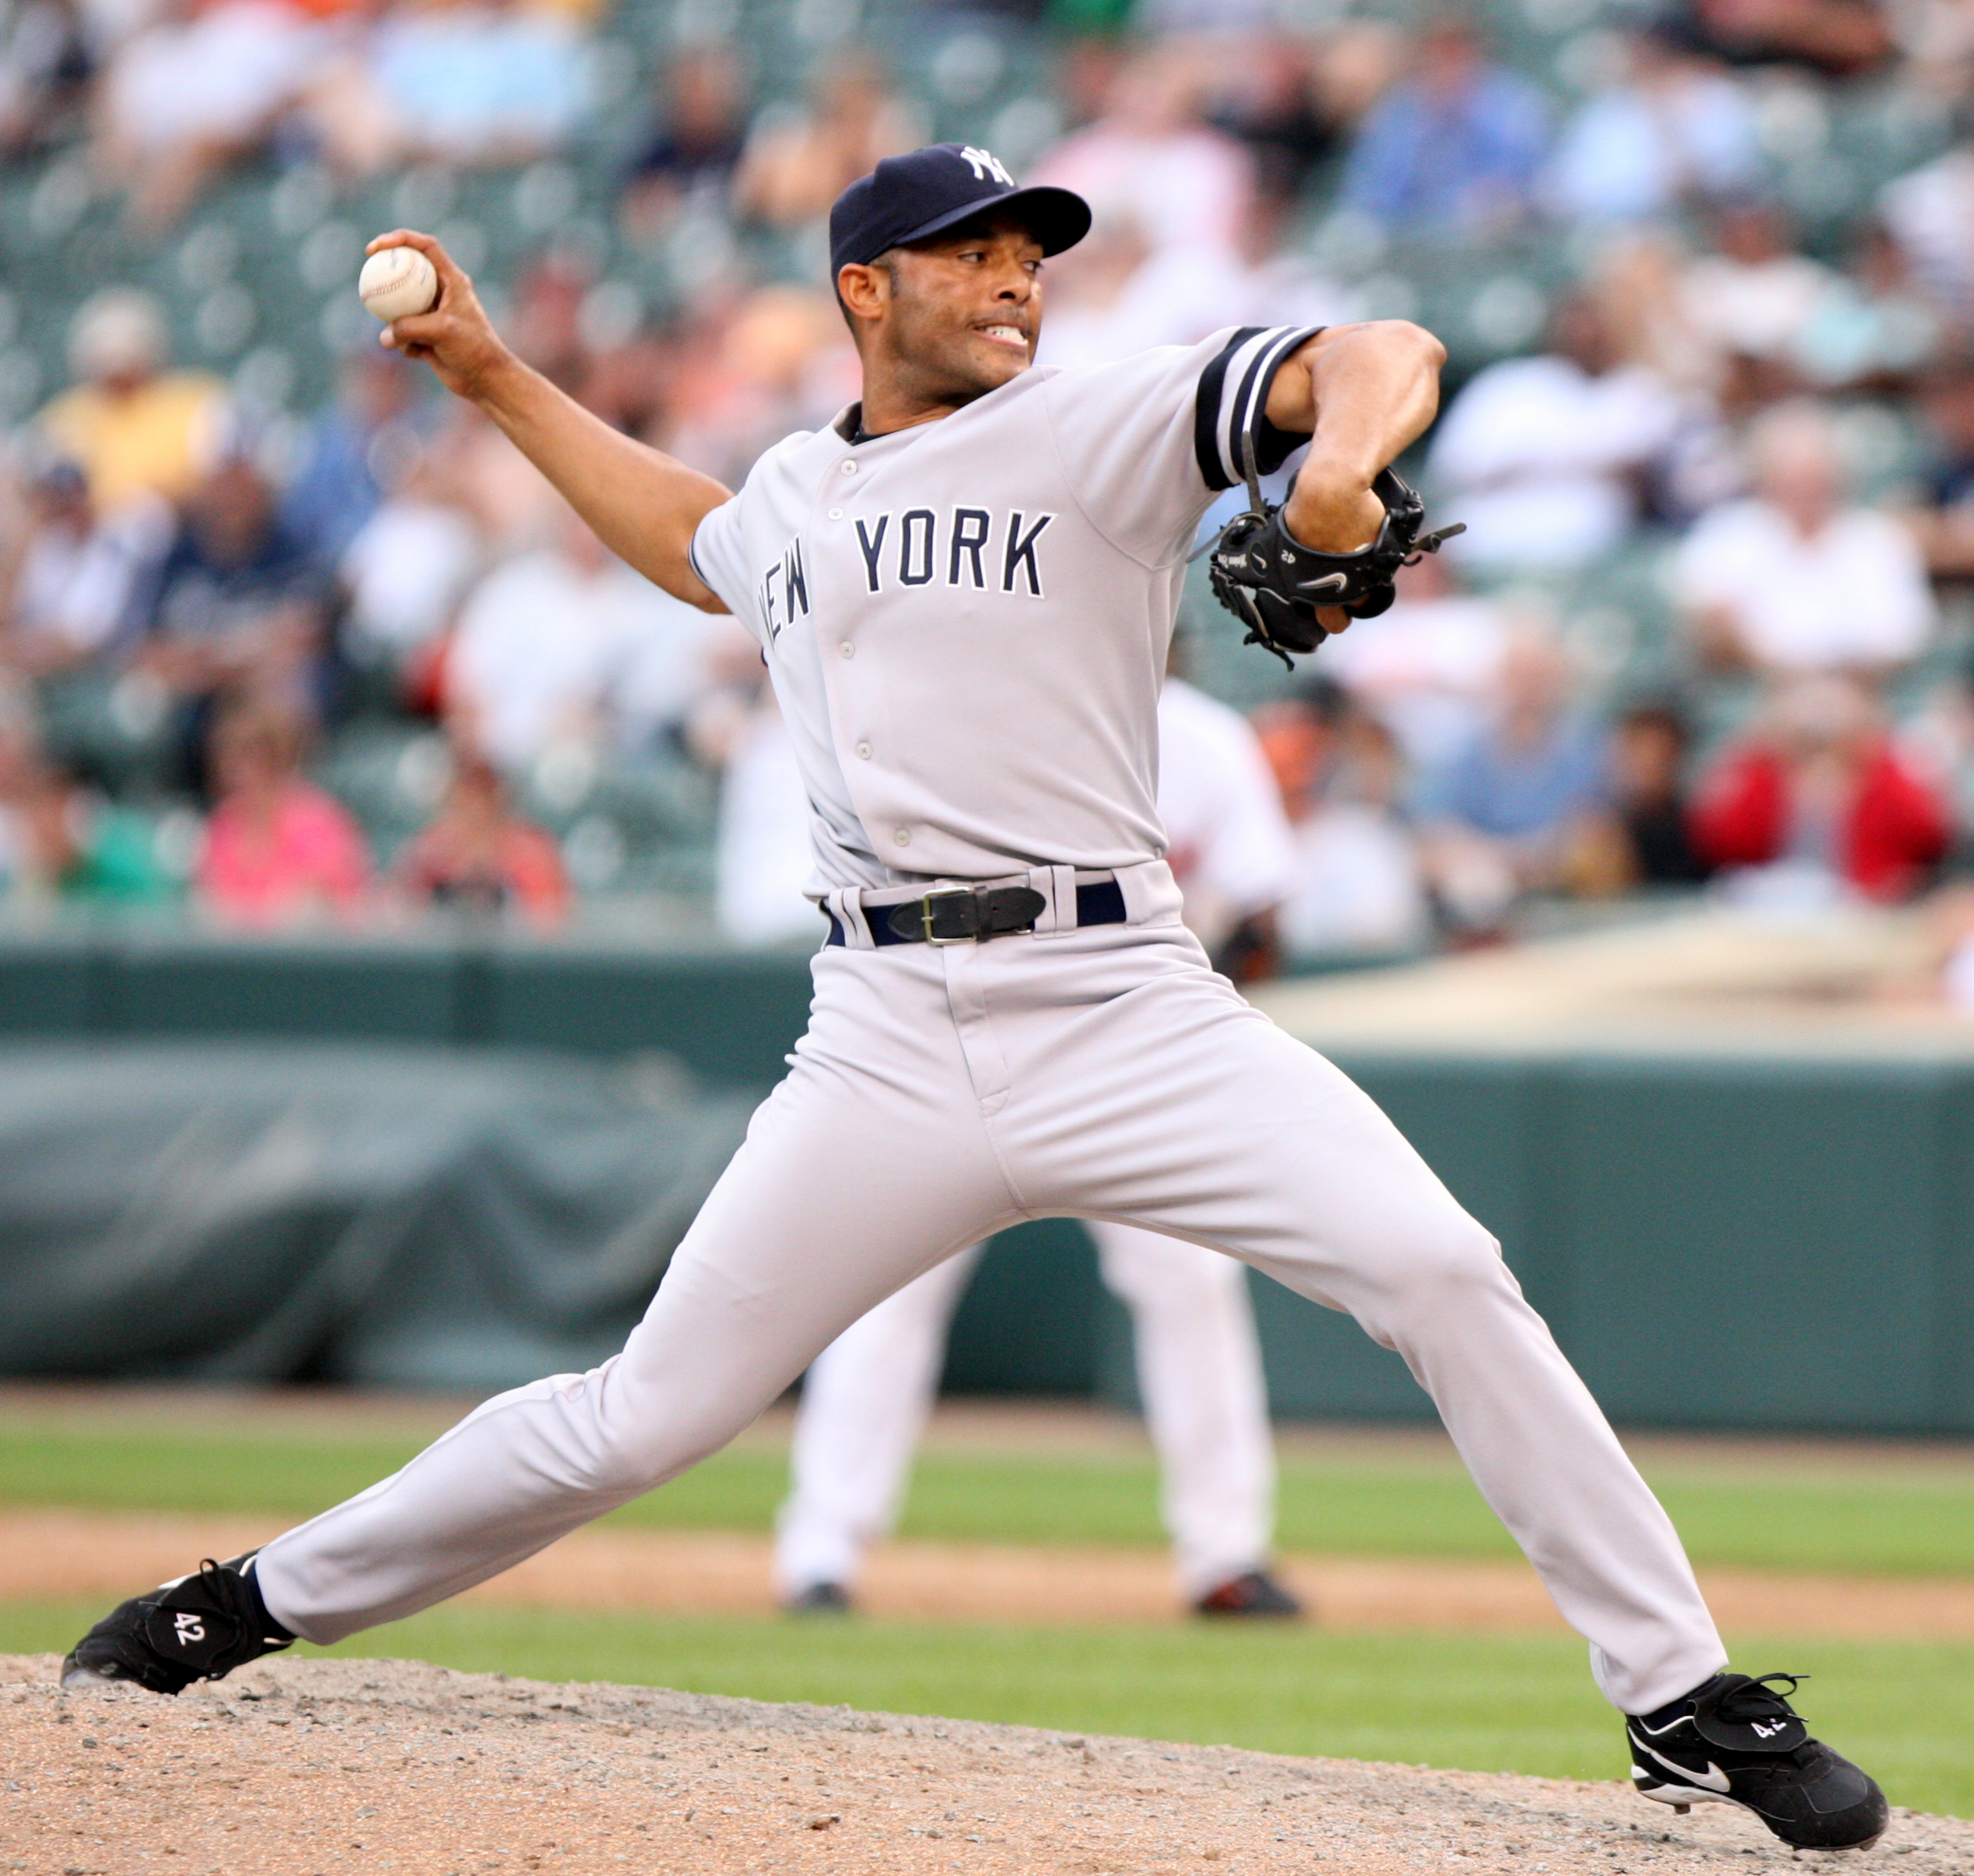 Mariano Rivera - Wikipedia